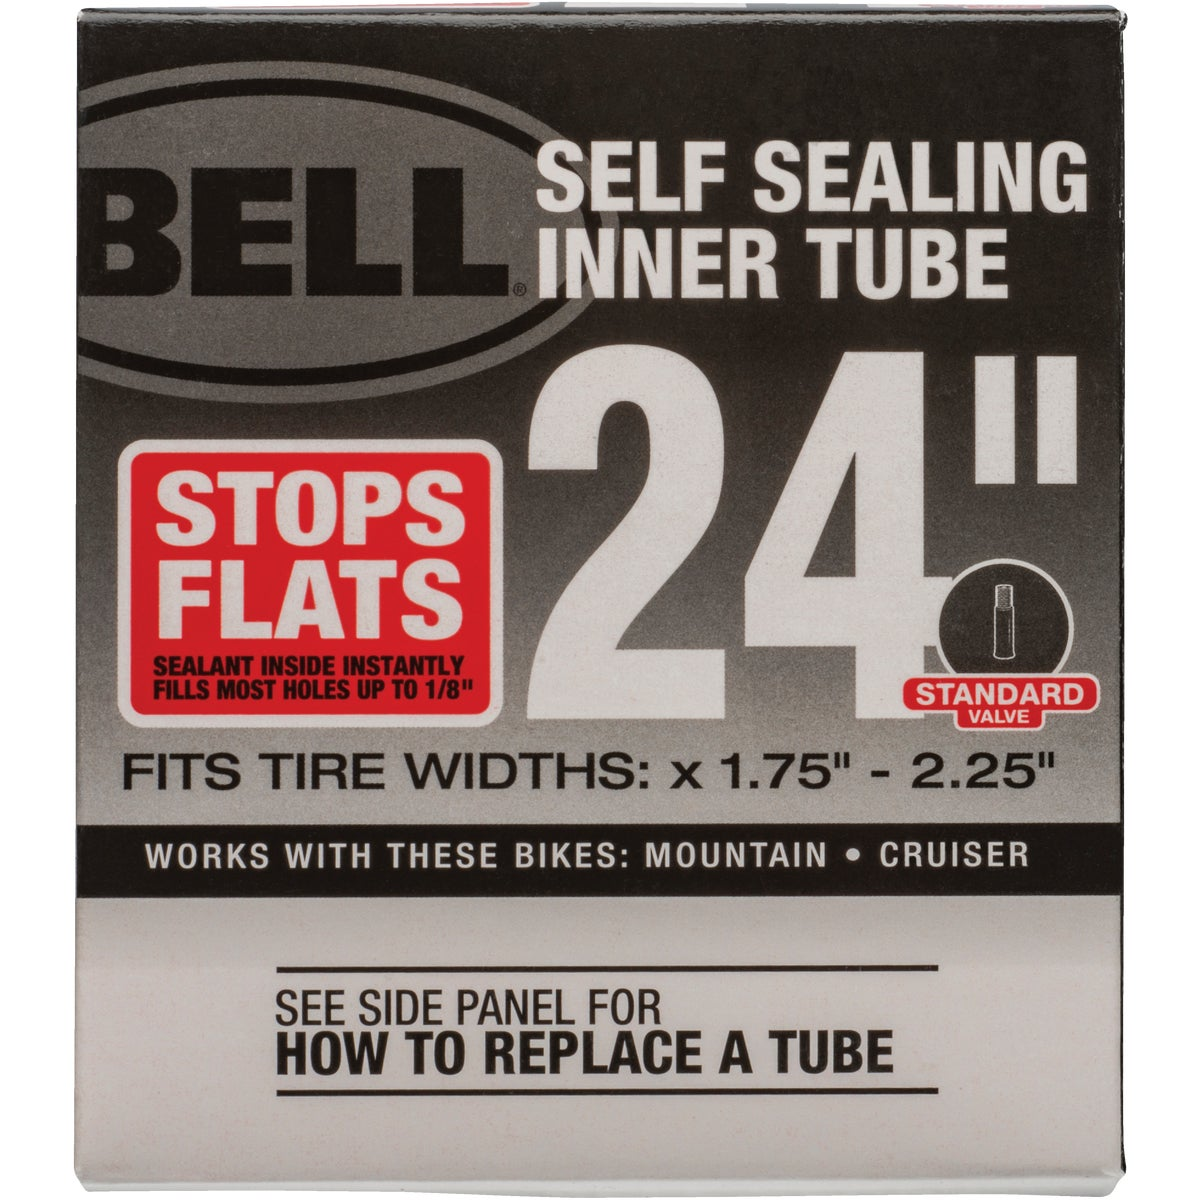 "24"" SELFSEAL INNER TUBE - 7015235 by Bell Sports"